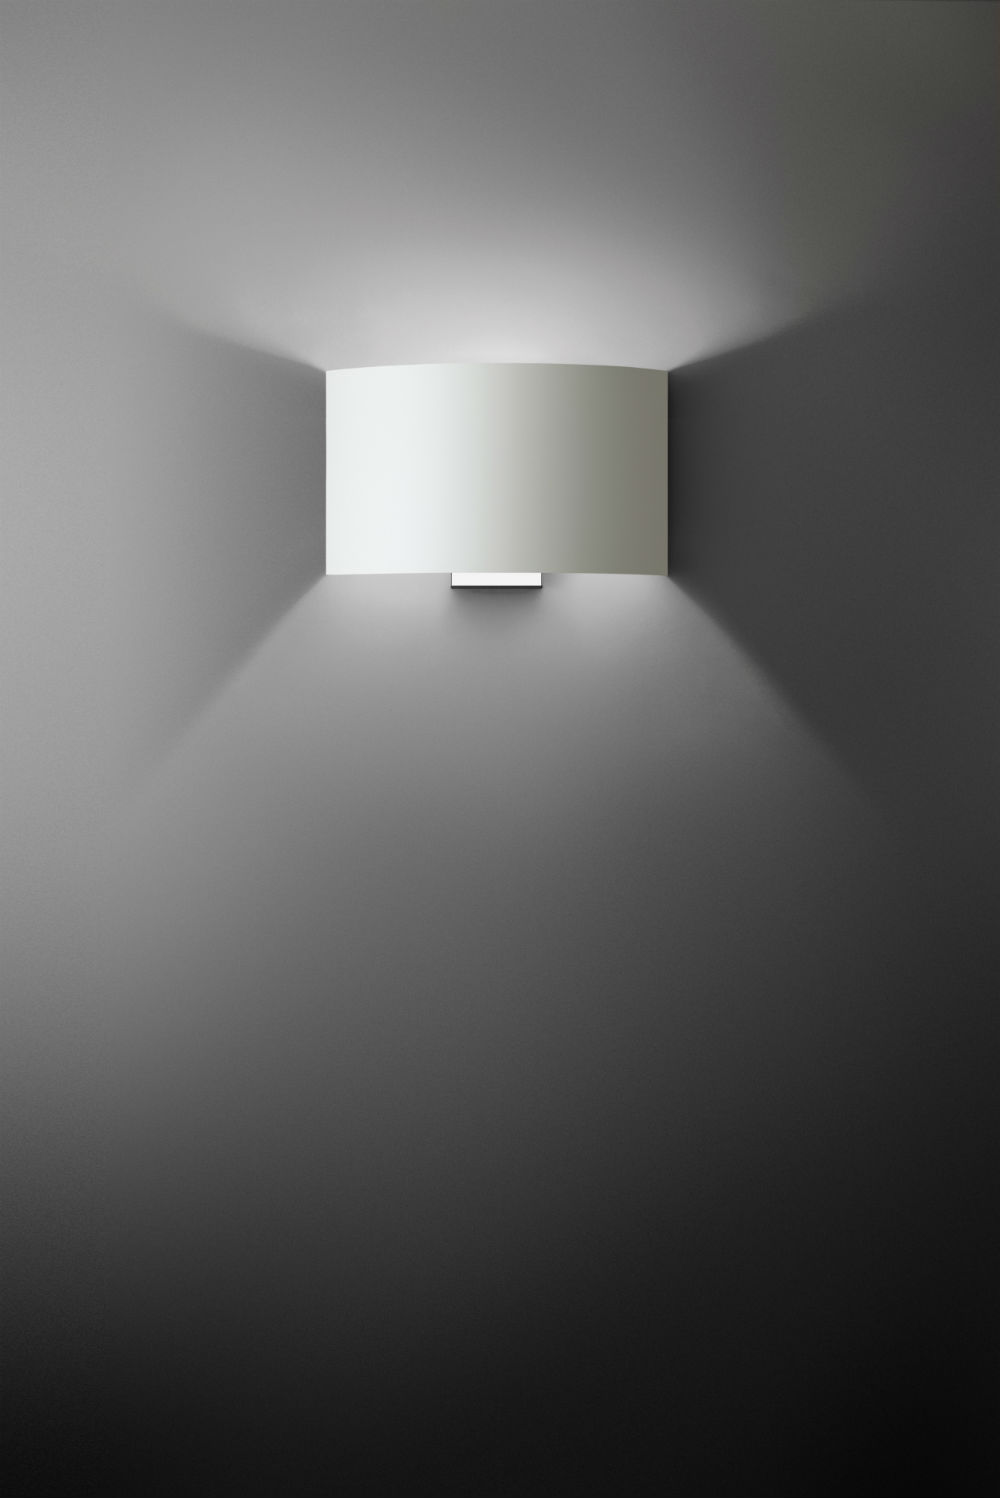 Combi Wall Lamp with switch Gx24q 2 1x18w lampshade laminado algodón Chrome